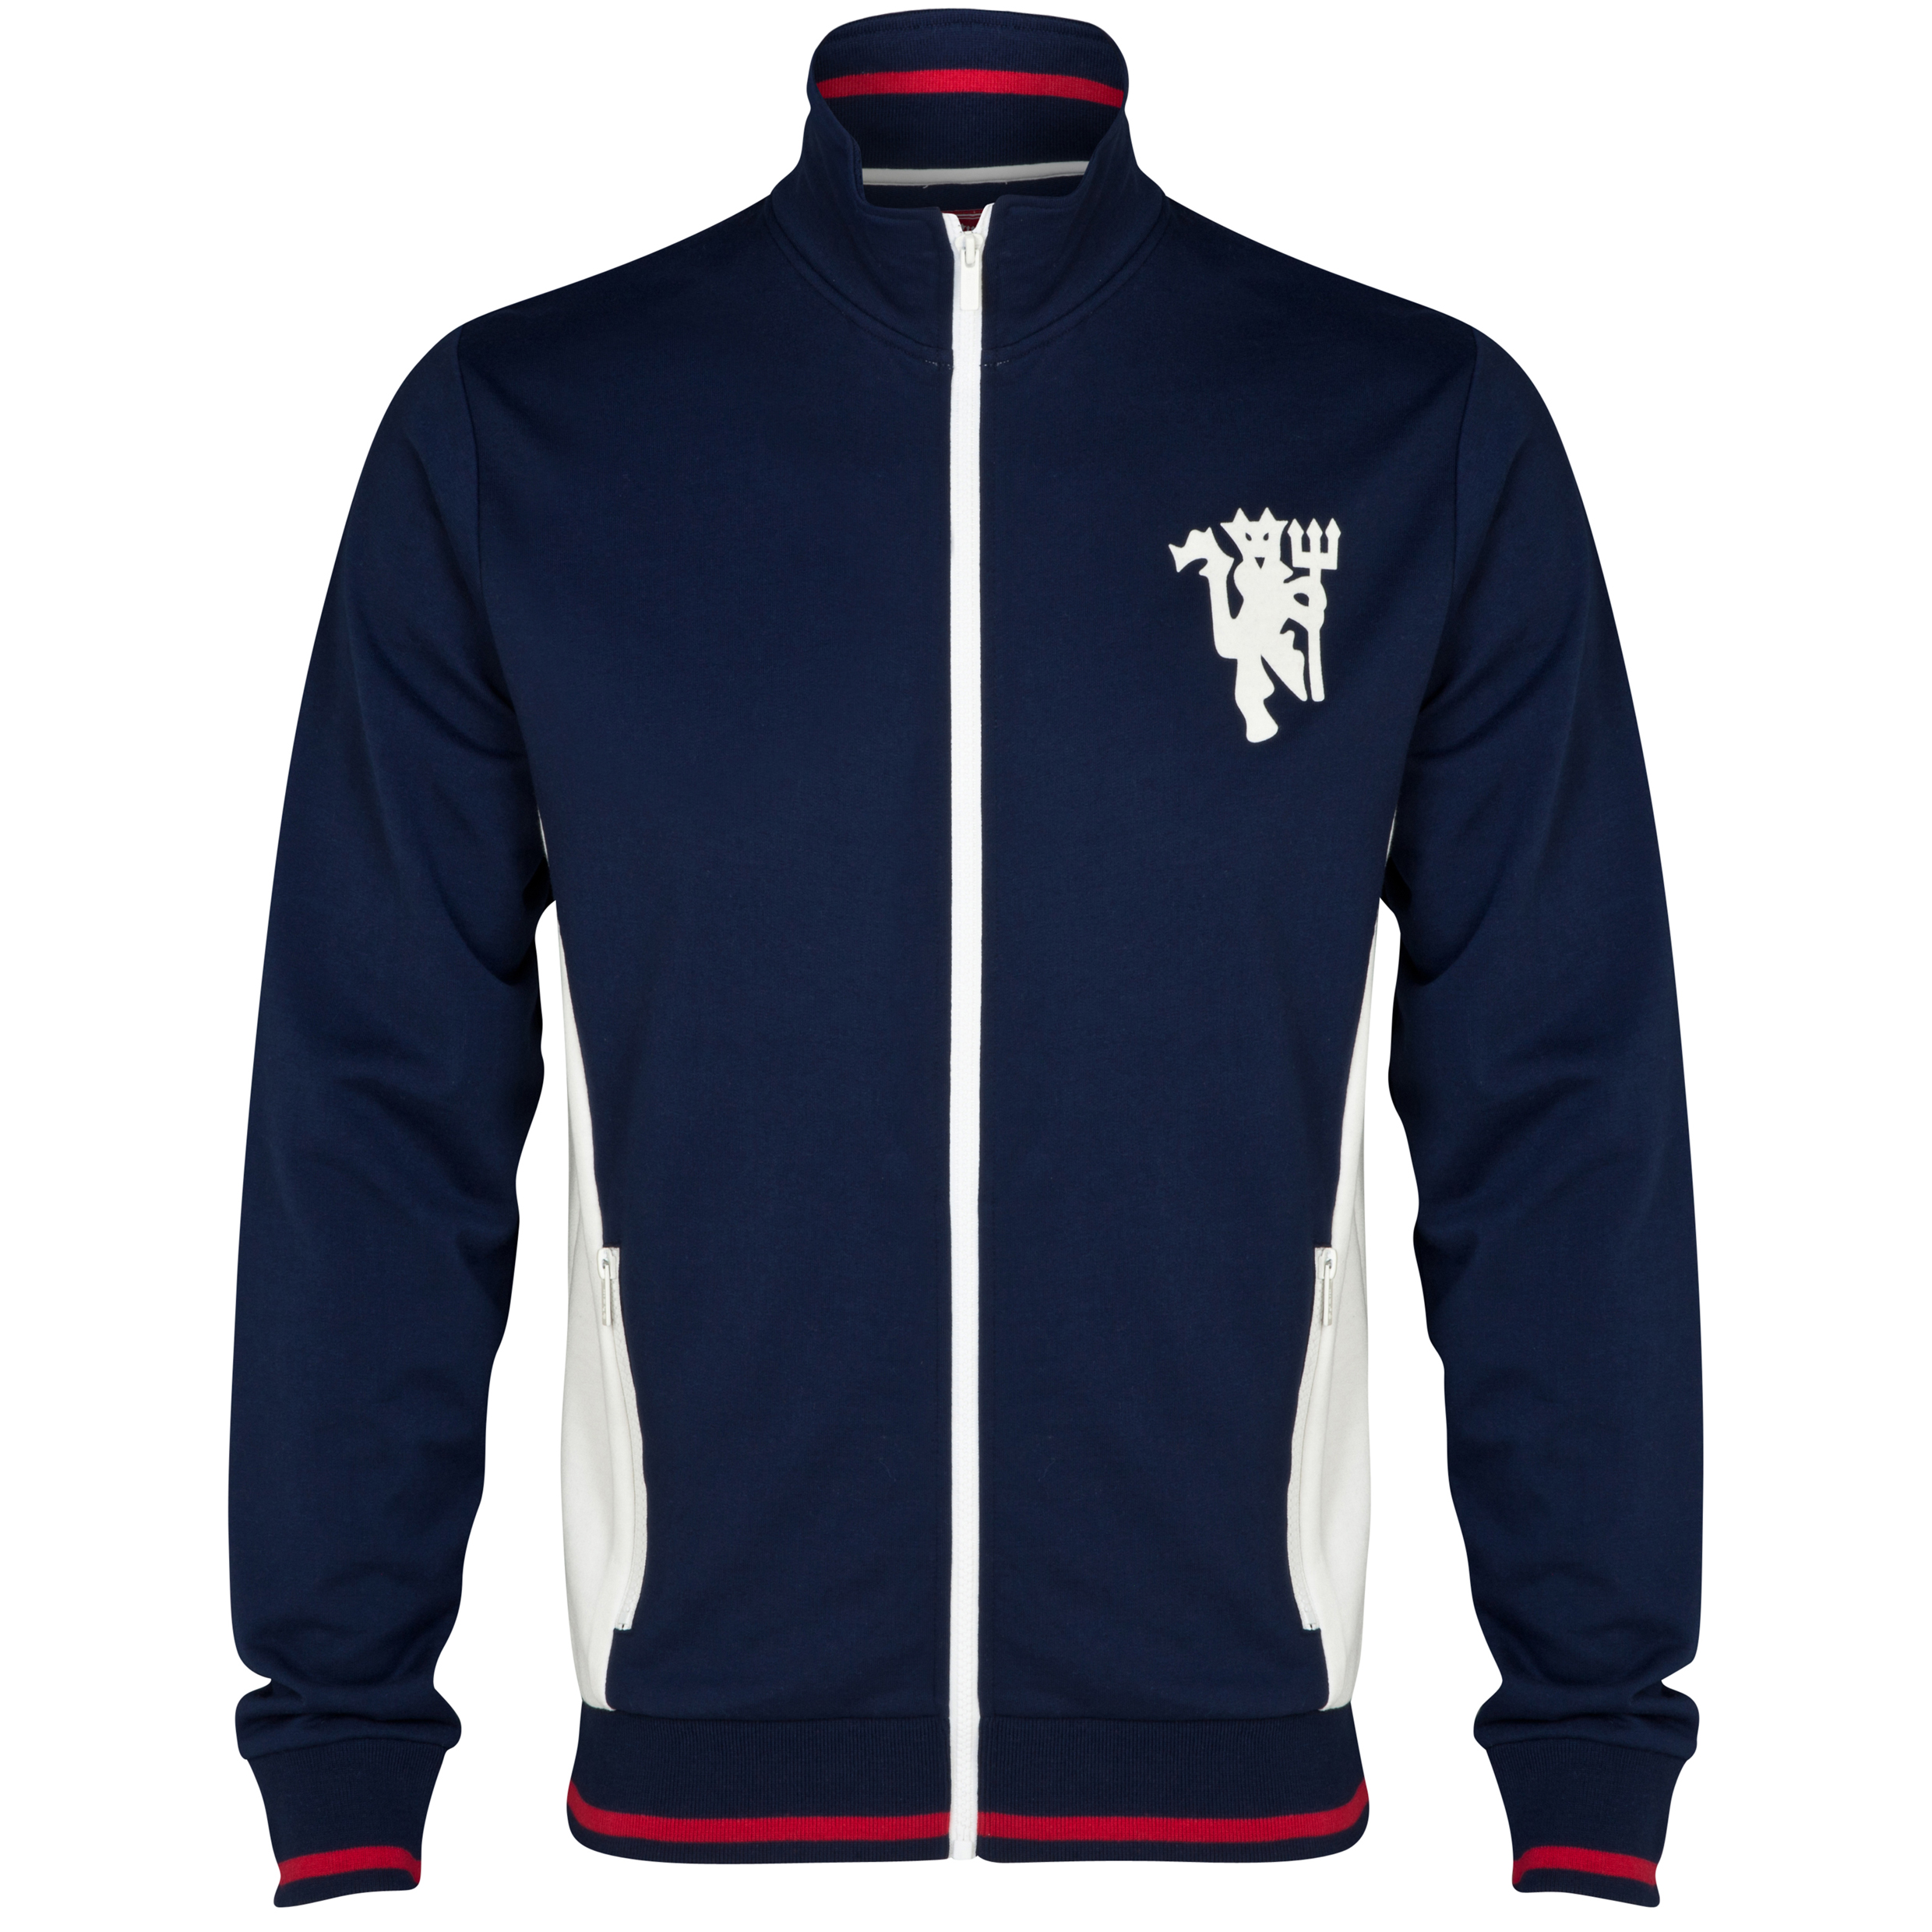 Manchester United Heritage Retro Zip Through Jacket - Older Boys Navy